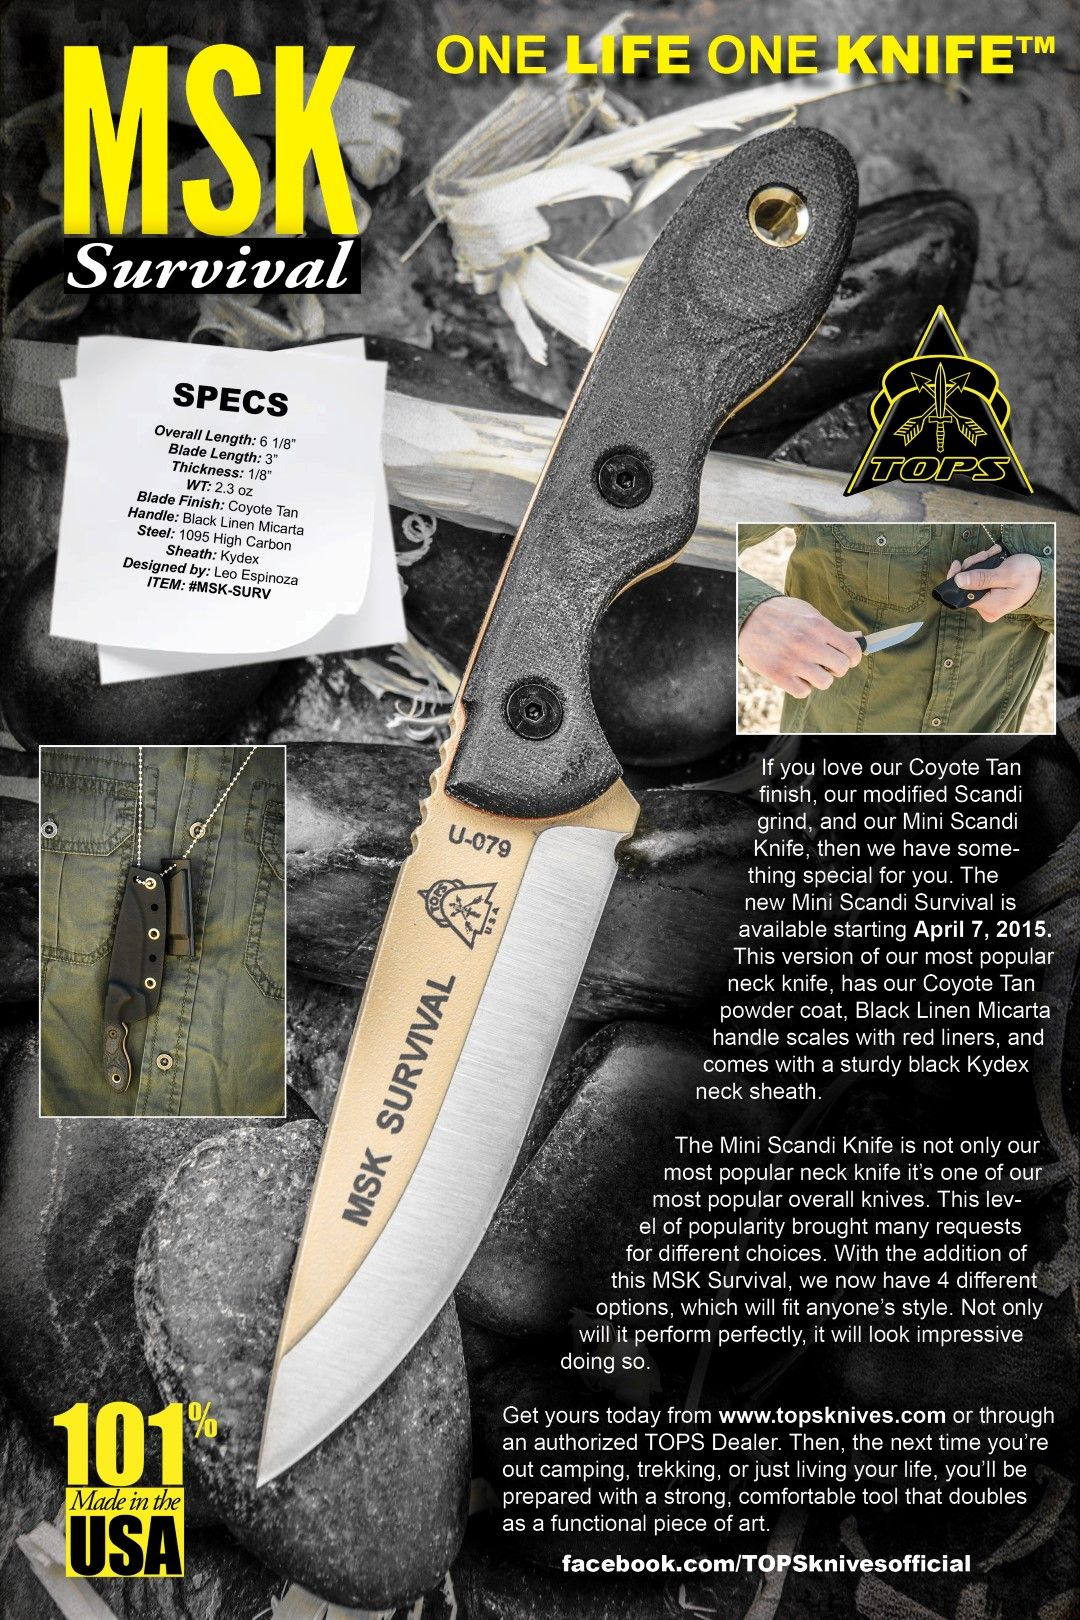 MSK SURVIVAL If You Love Our Coyote Tan Finish, Our